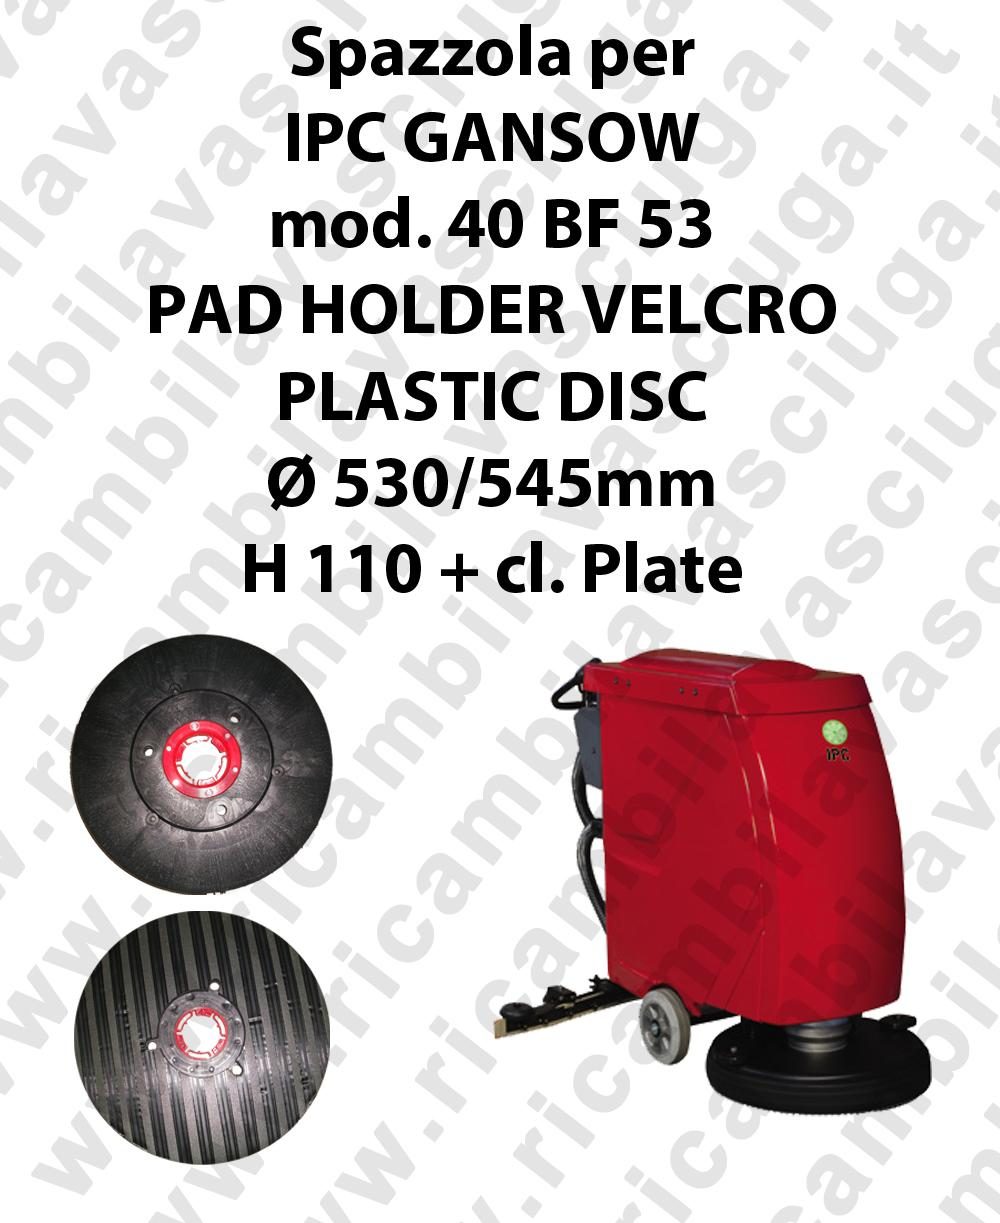 PAD HOLDER VELCRO pour autolaveuses GANSOW Reference 40 BF 53